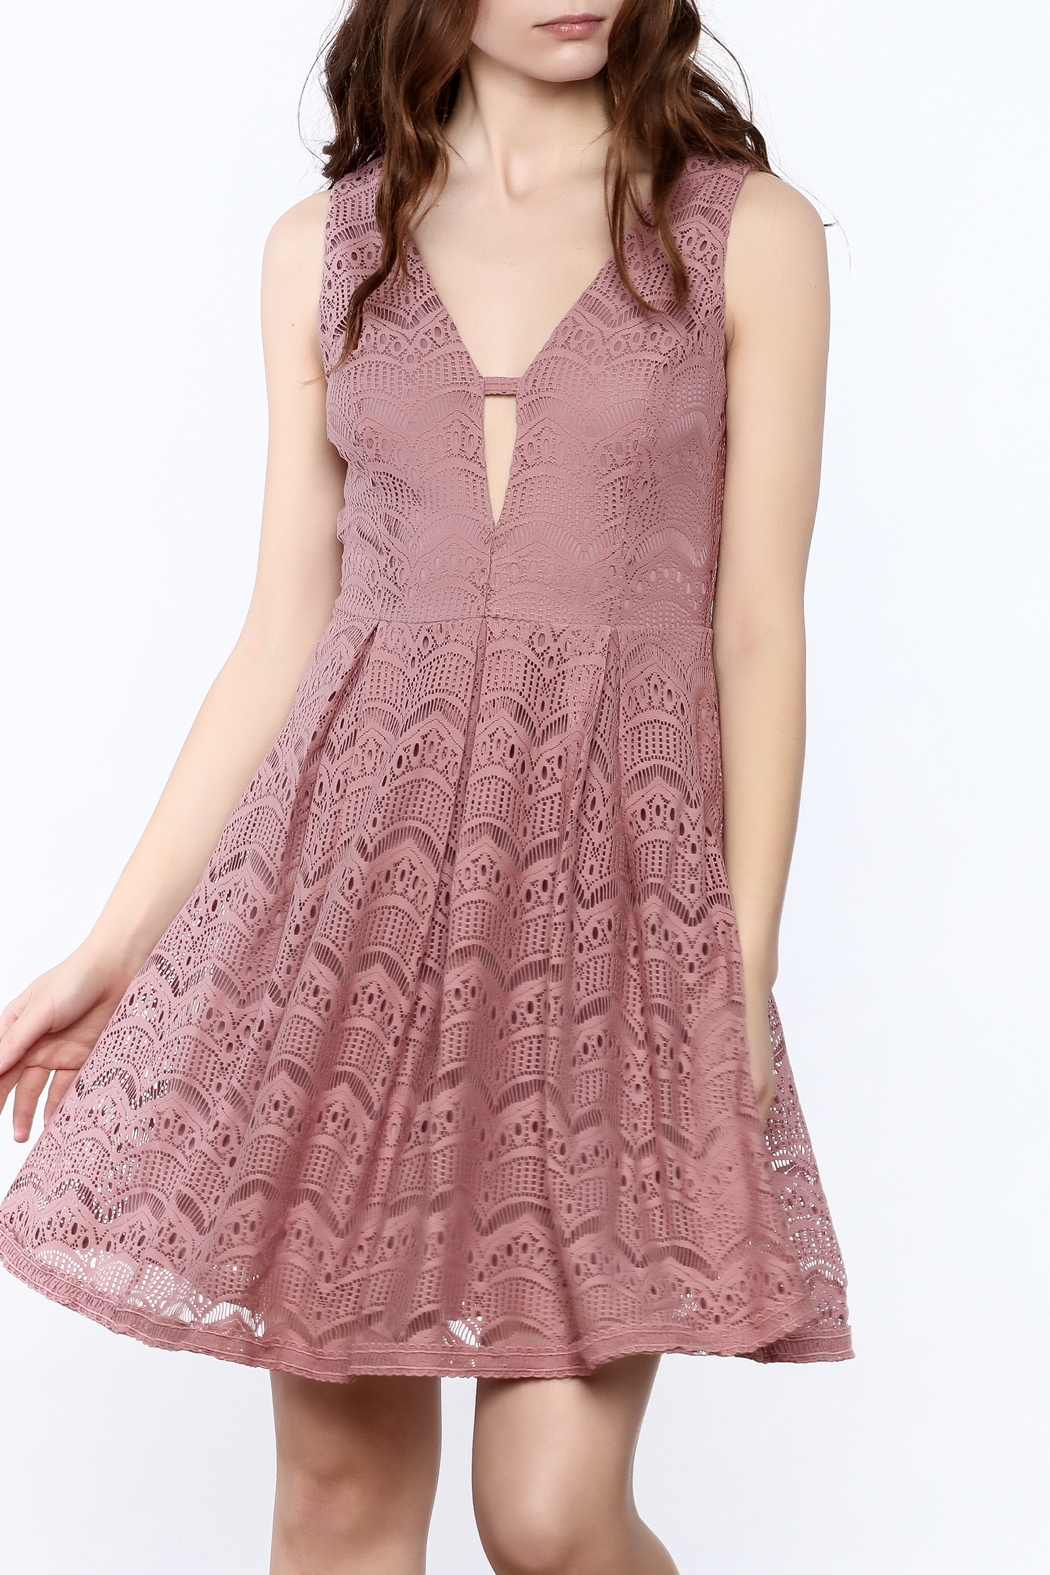 She + Sky Old Rose Lace Dress - Main Image